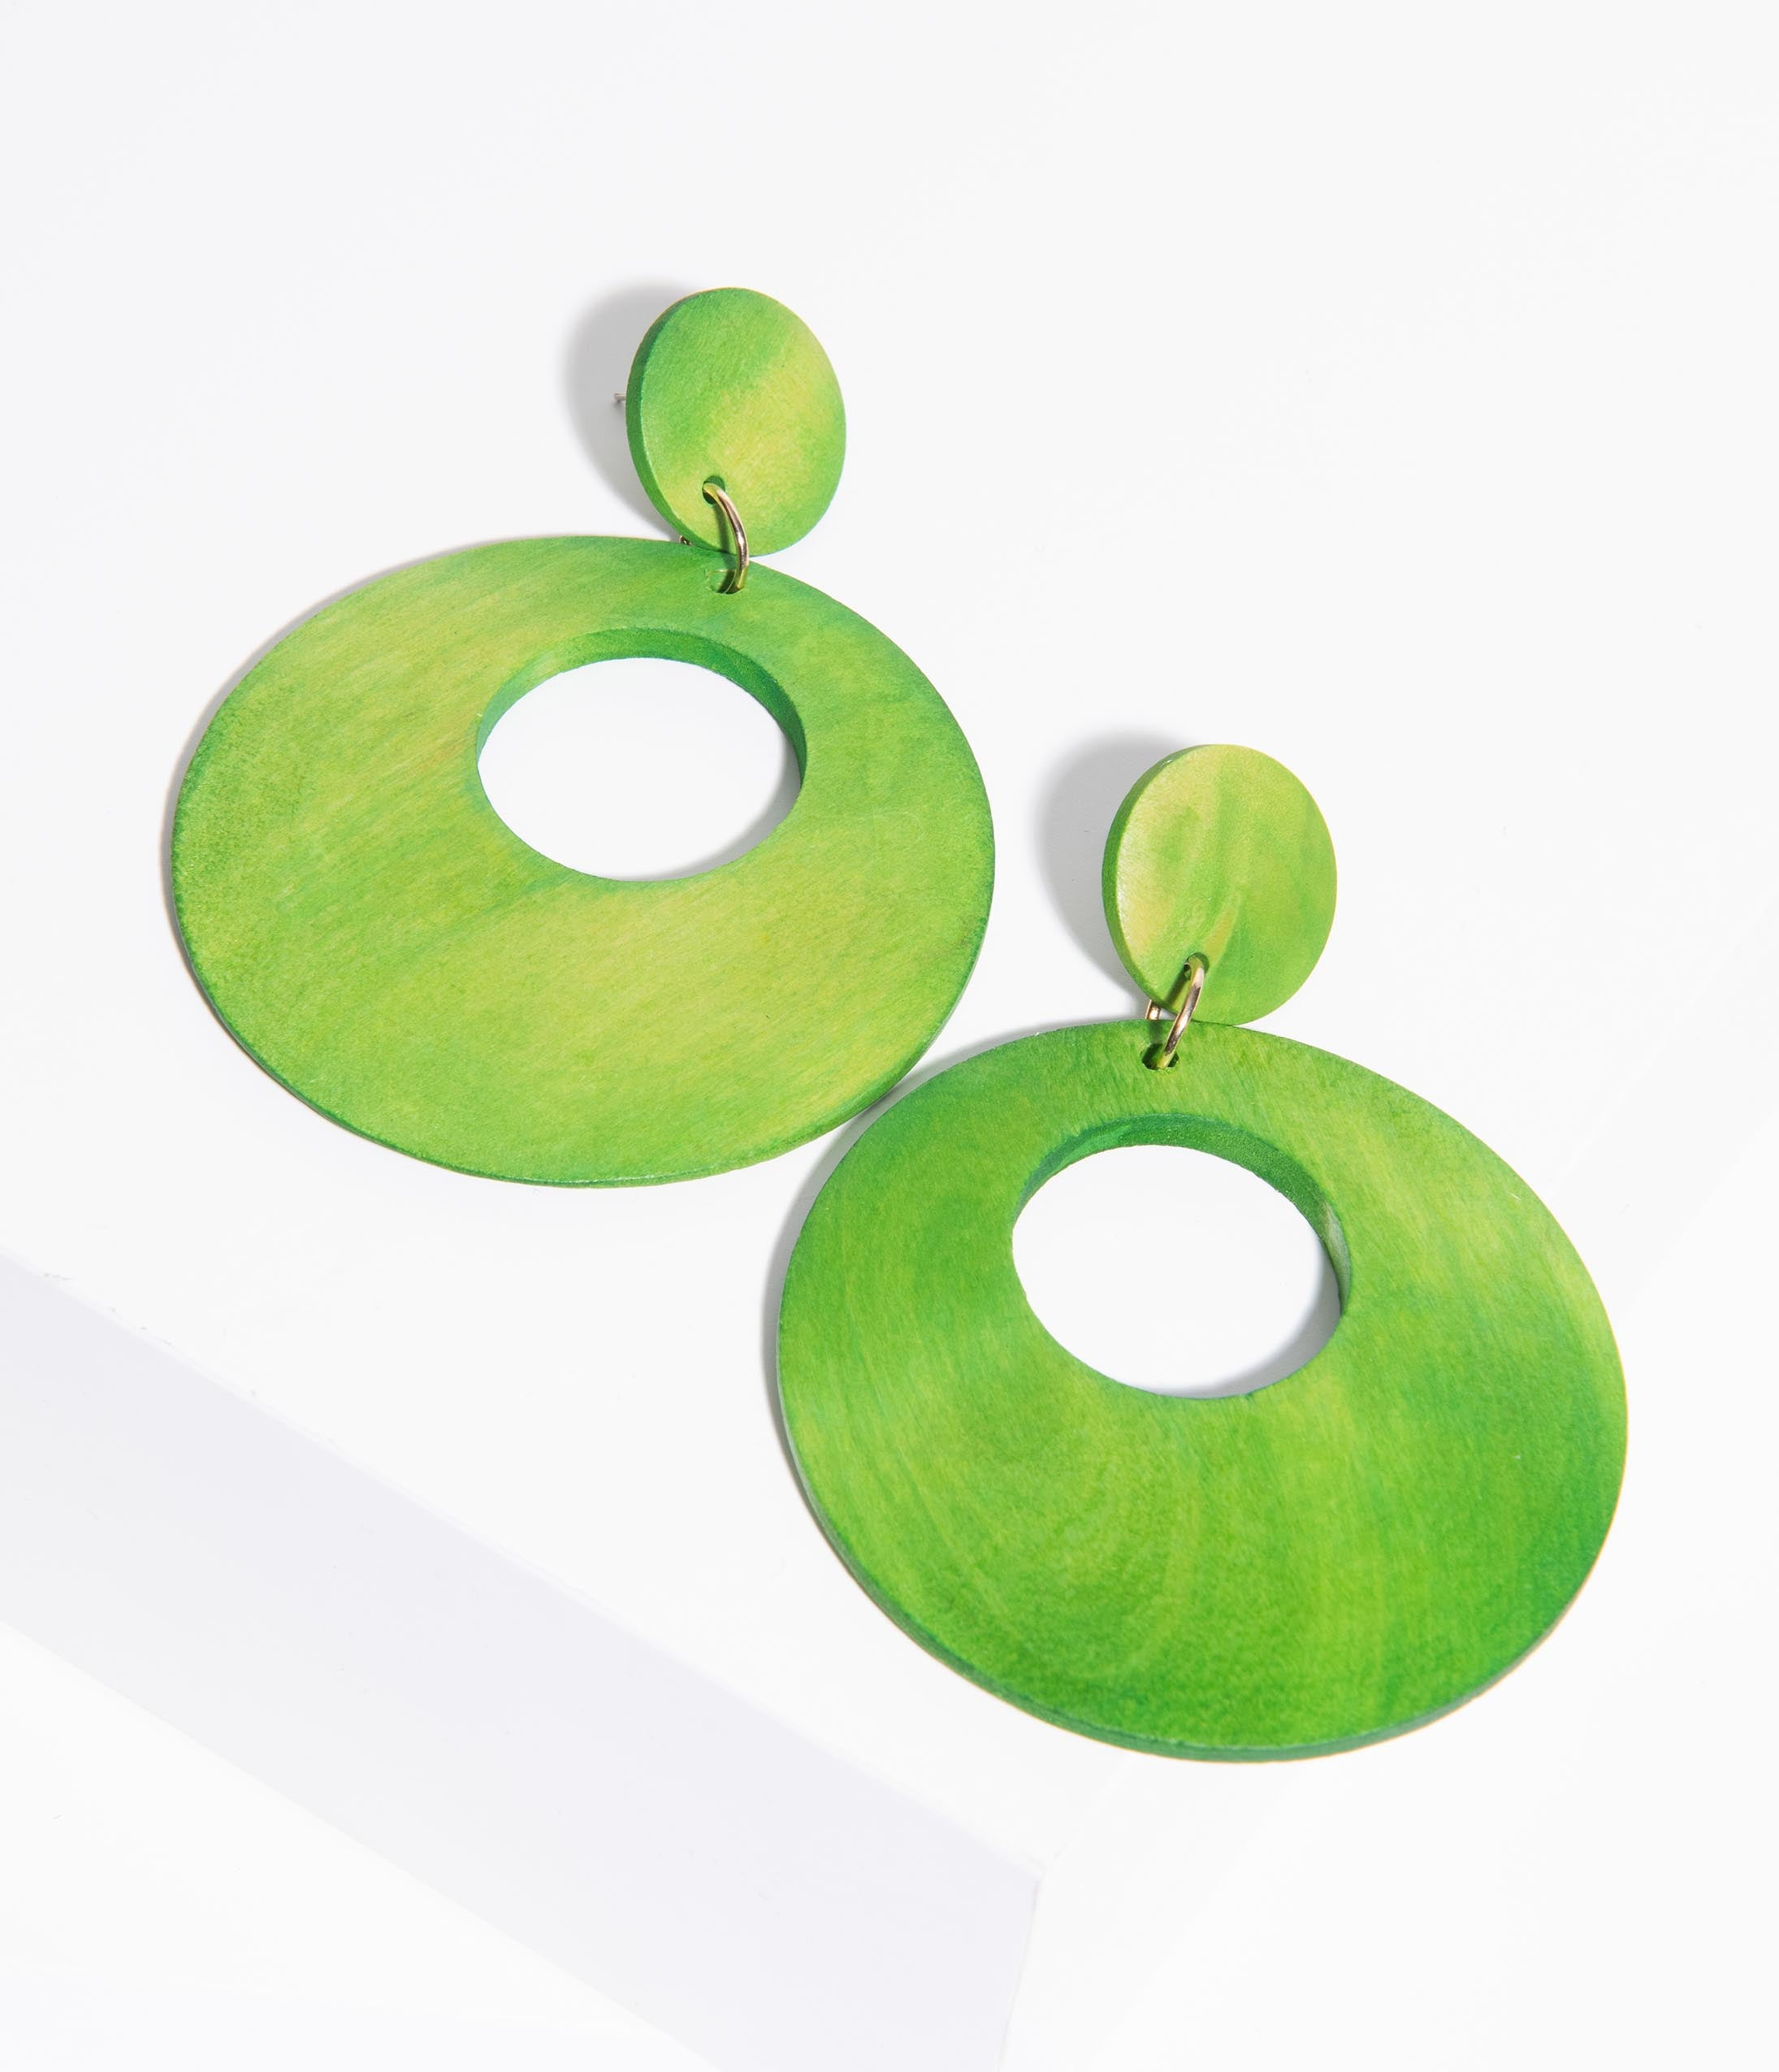 Vintage Style Jewelry, Retro Jewelry 1960S Green Wooden Circle Drop Earring $16.00 AT vintagedancer.com